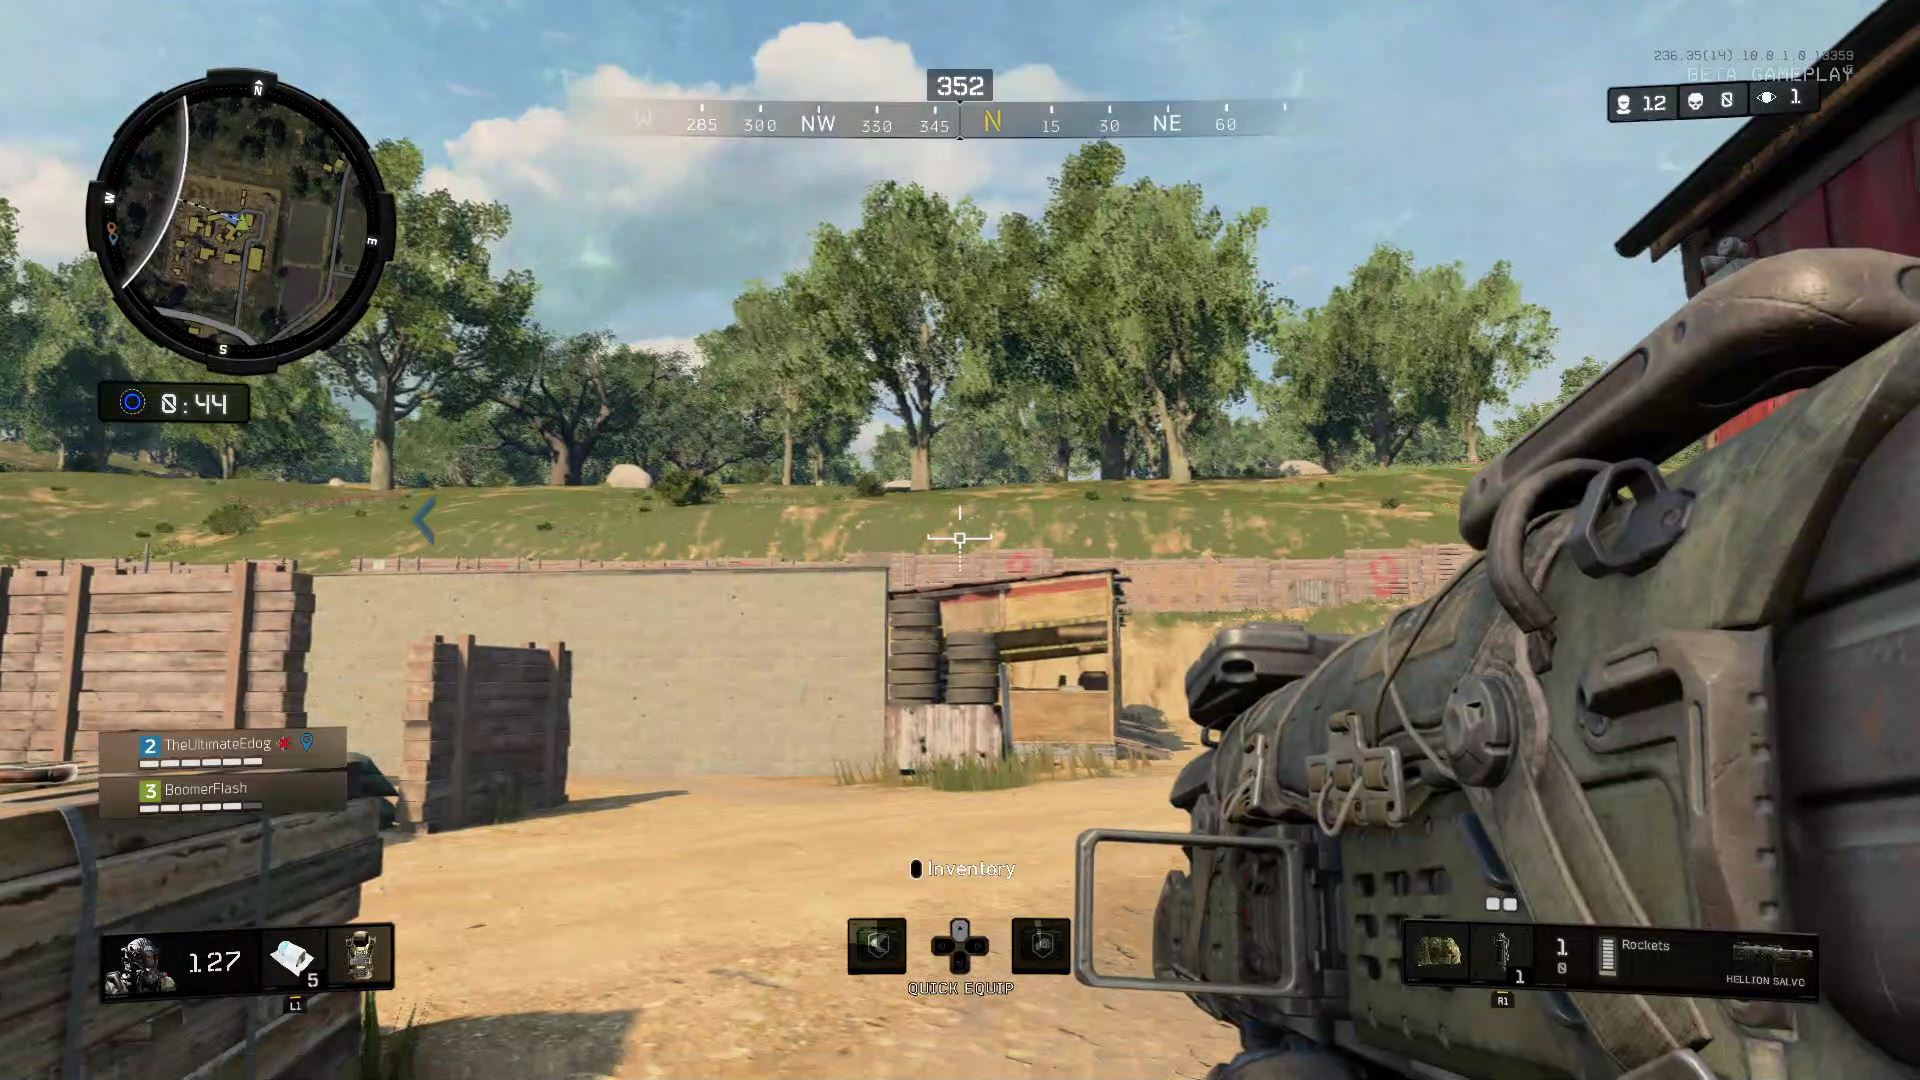 Black Ops 4: Blackout - Here Are The Best Weapons To Use In Any